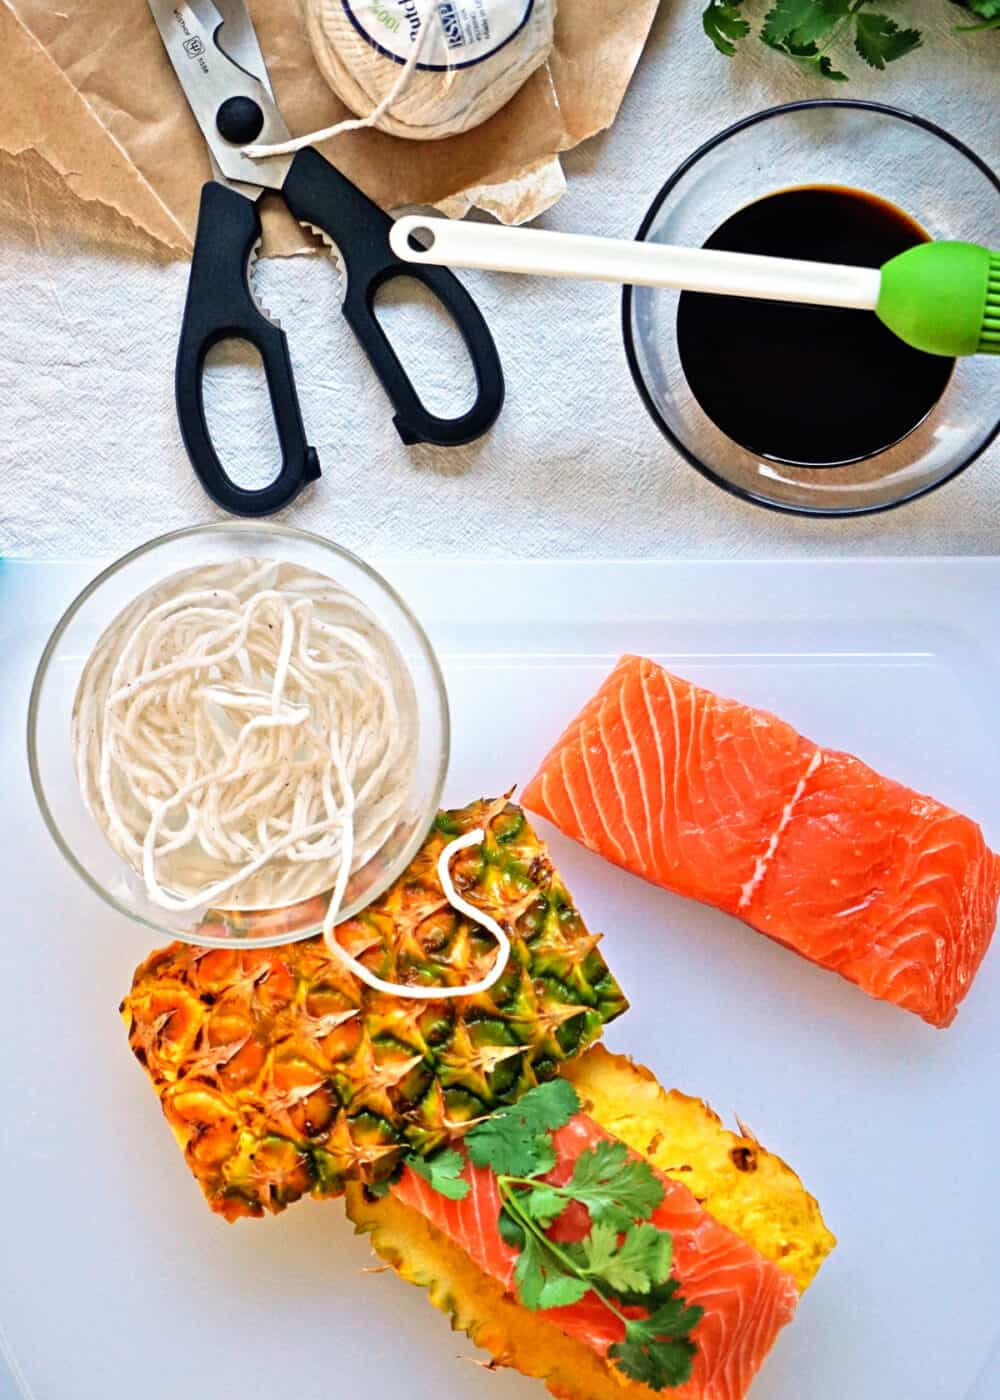 overhead image: counter top with raw salmon filet, bowl of teriyaki sauce, pineapple planks and cotton twine with scissors